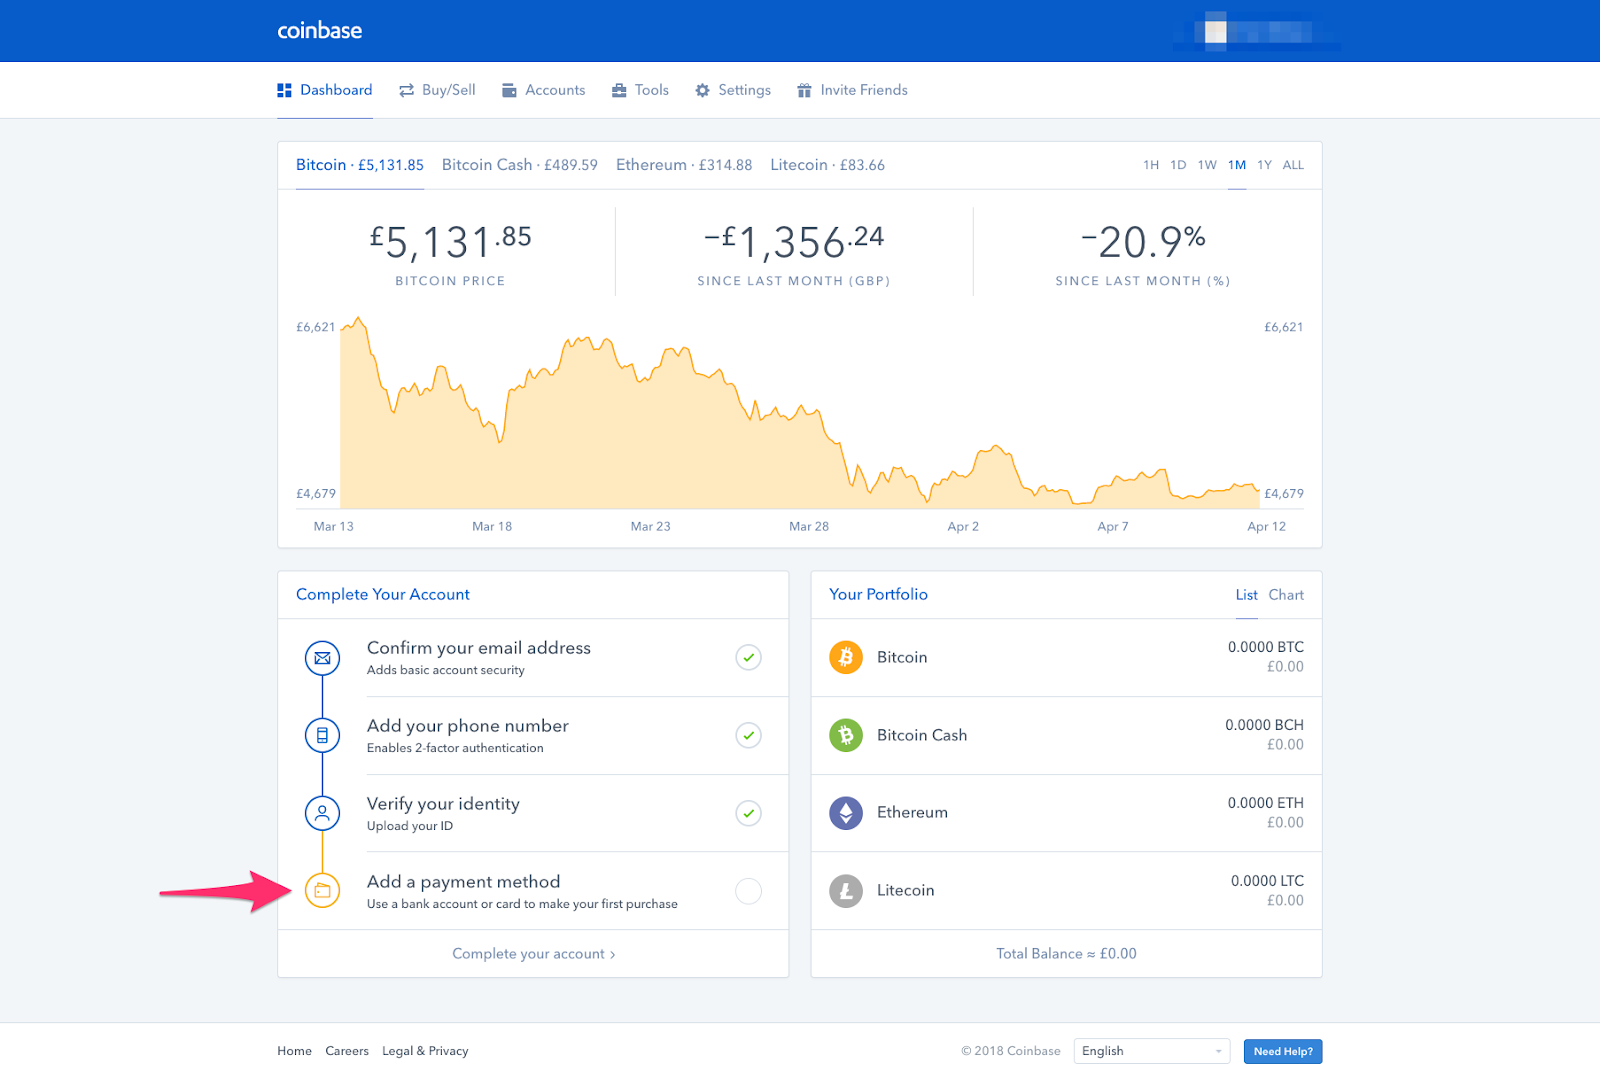 coinbase security settings